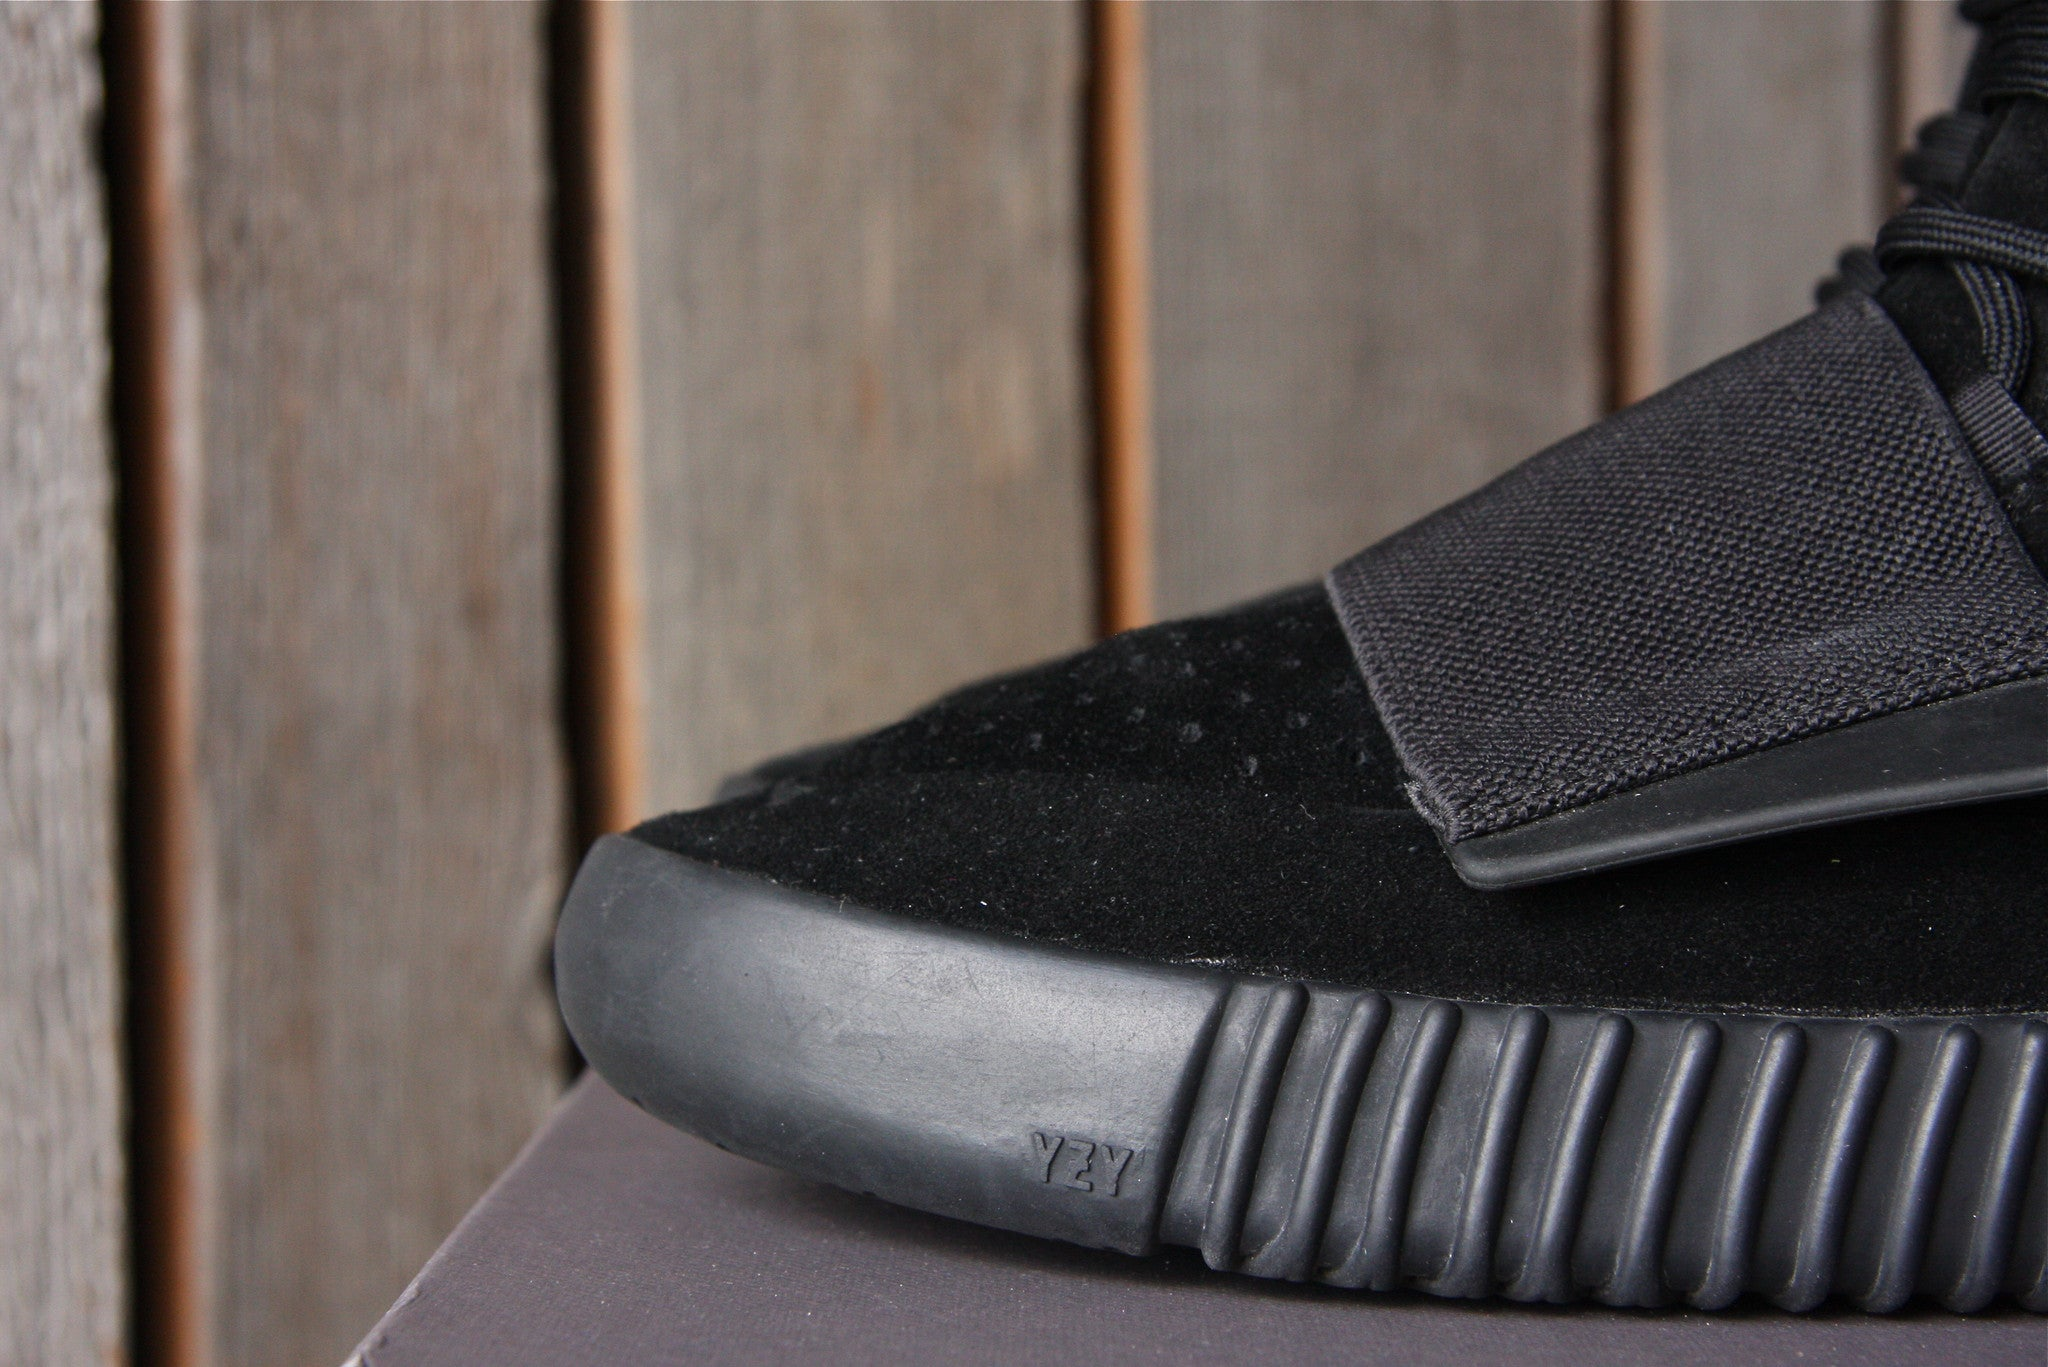 Adidas Yeezy Boost 750 (Black)